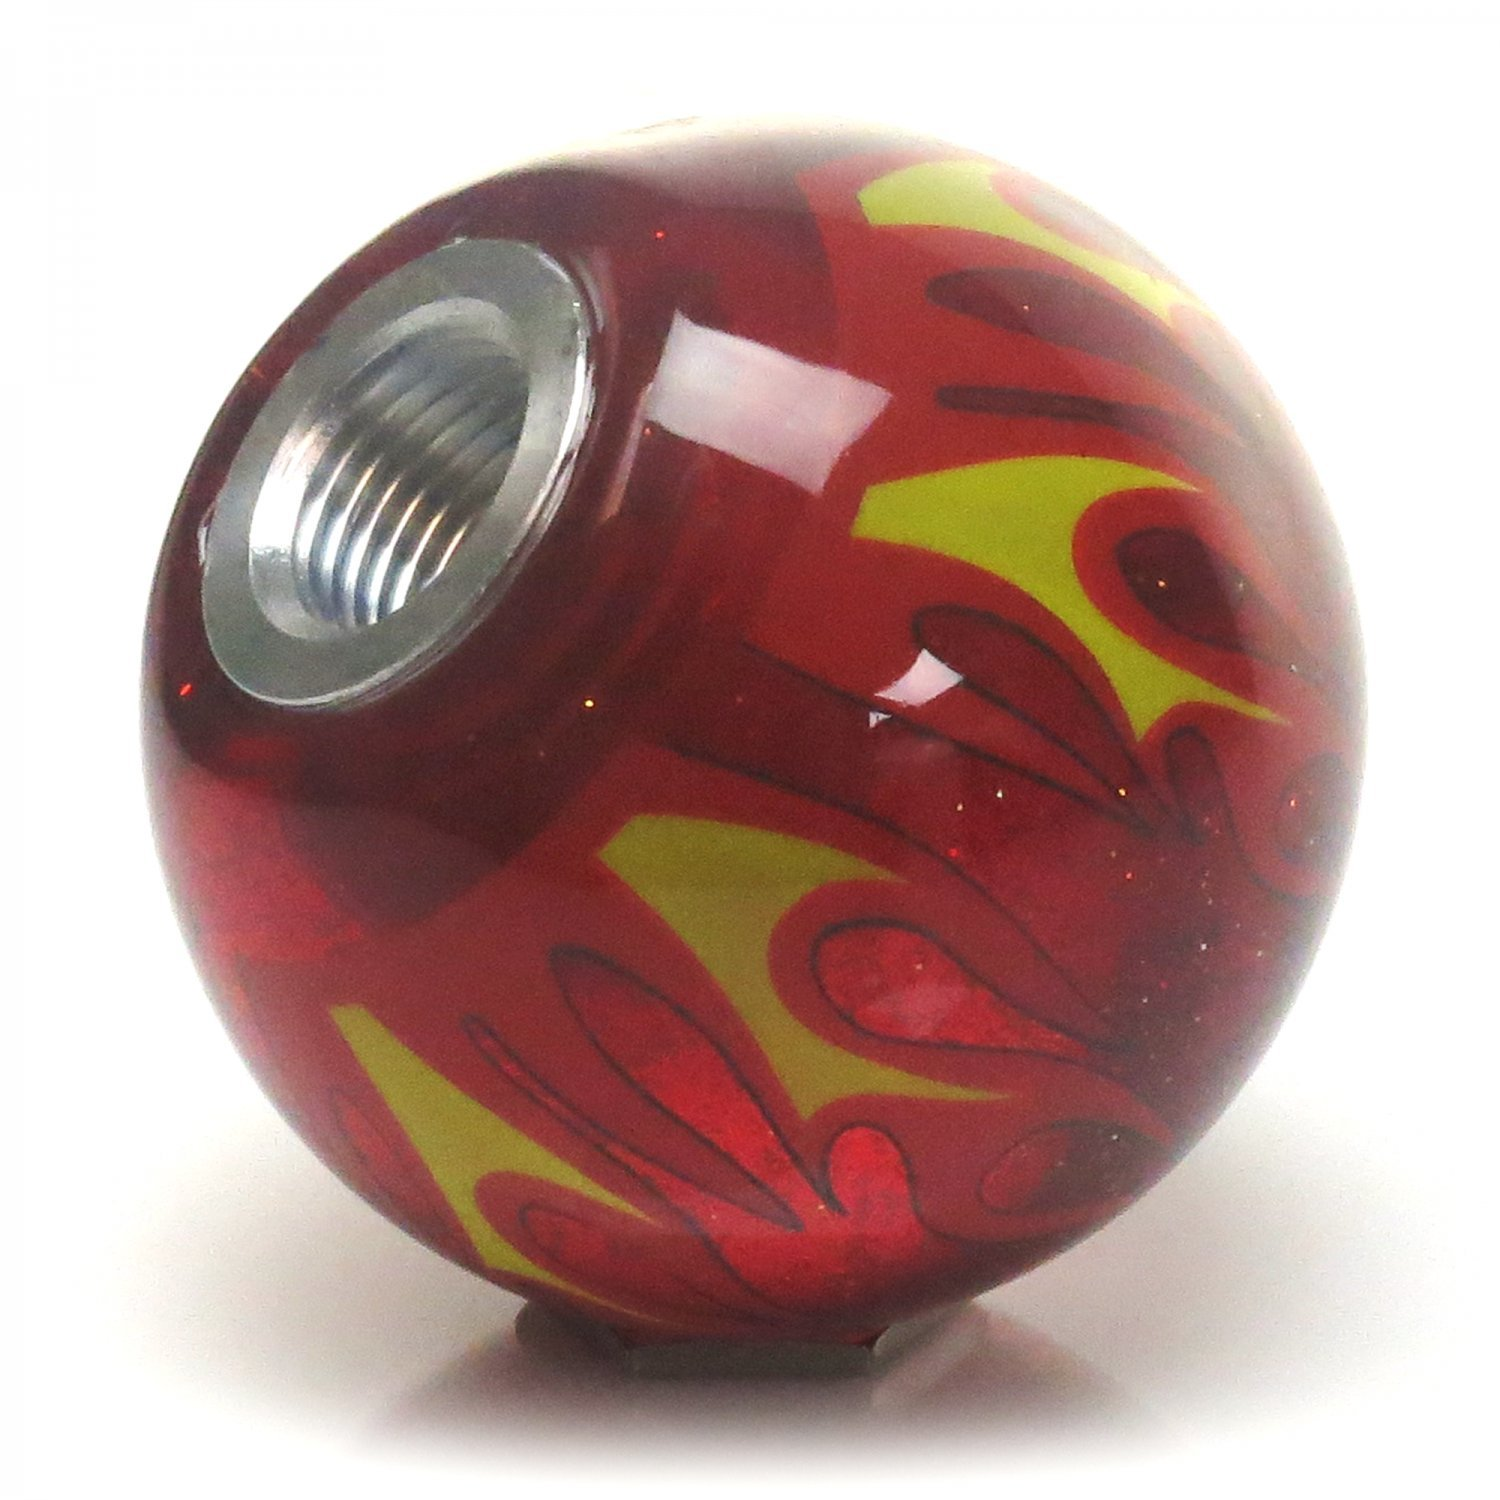 American Shifter 237199 Red Flame Metal Flake Shift Knob with M16 x 1.5 Insert White Eagle Coat of Arms